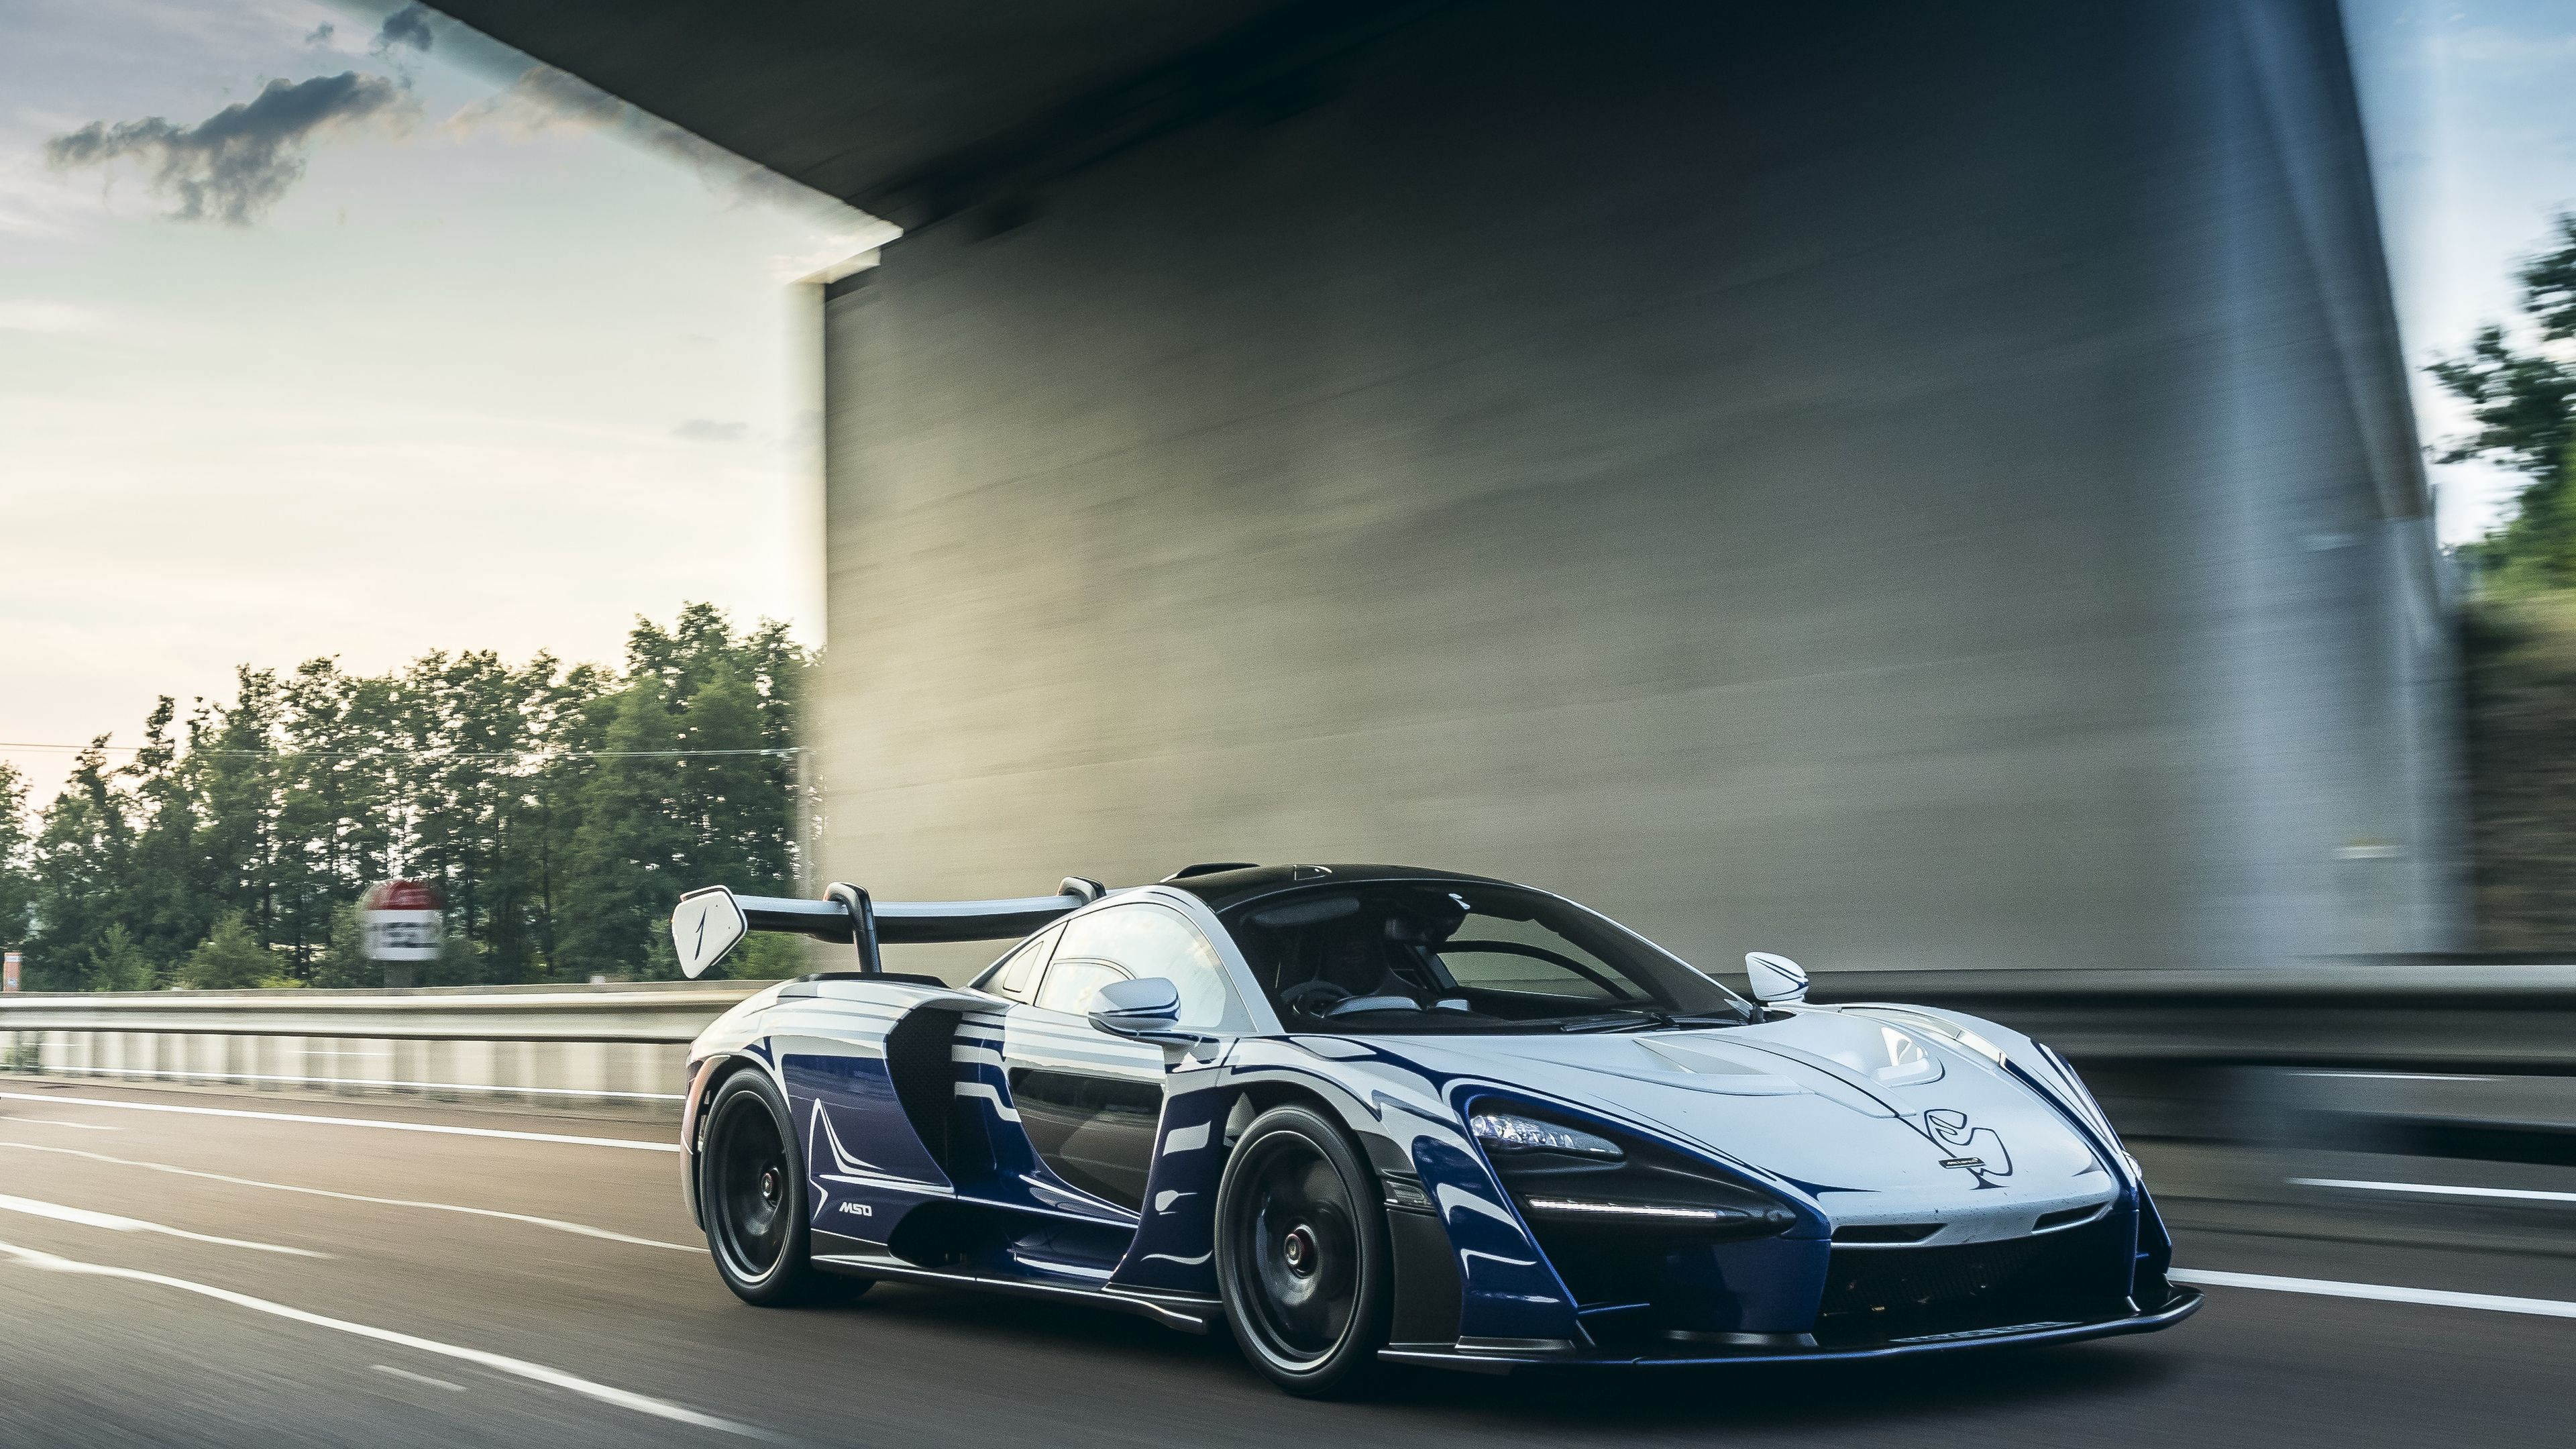 Mclaren Senna 4k 2019 Mclaren Wallpapers Mclaren Senna Wallpapers Hd Wallpapers Cars Wallpapers 5k Wallpapers 4k W Car Wallpapers Mclaren Road Car Mclaren